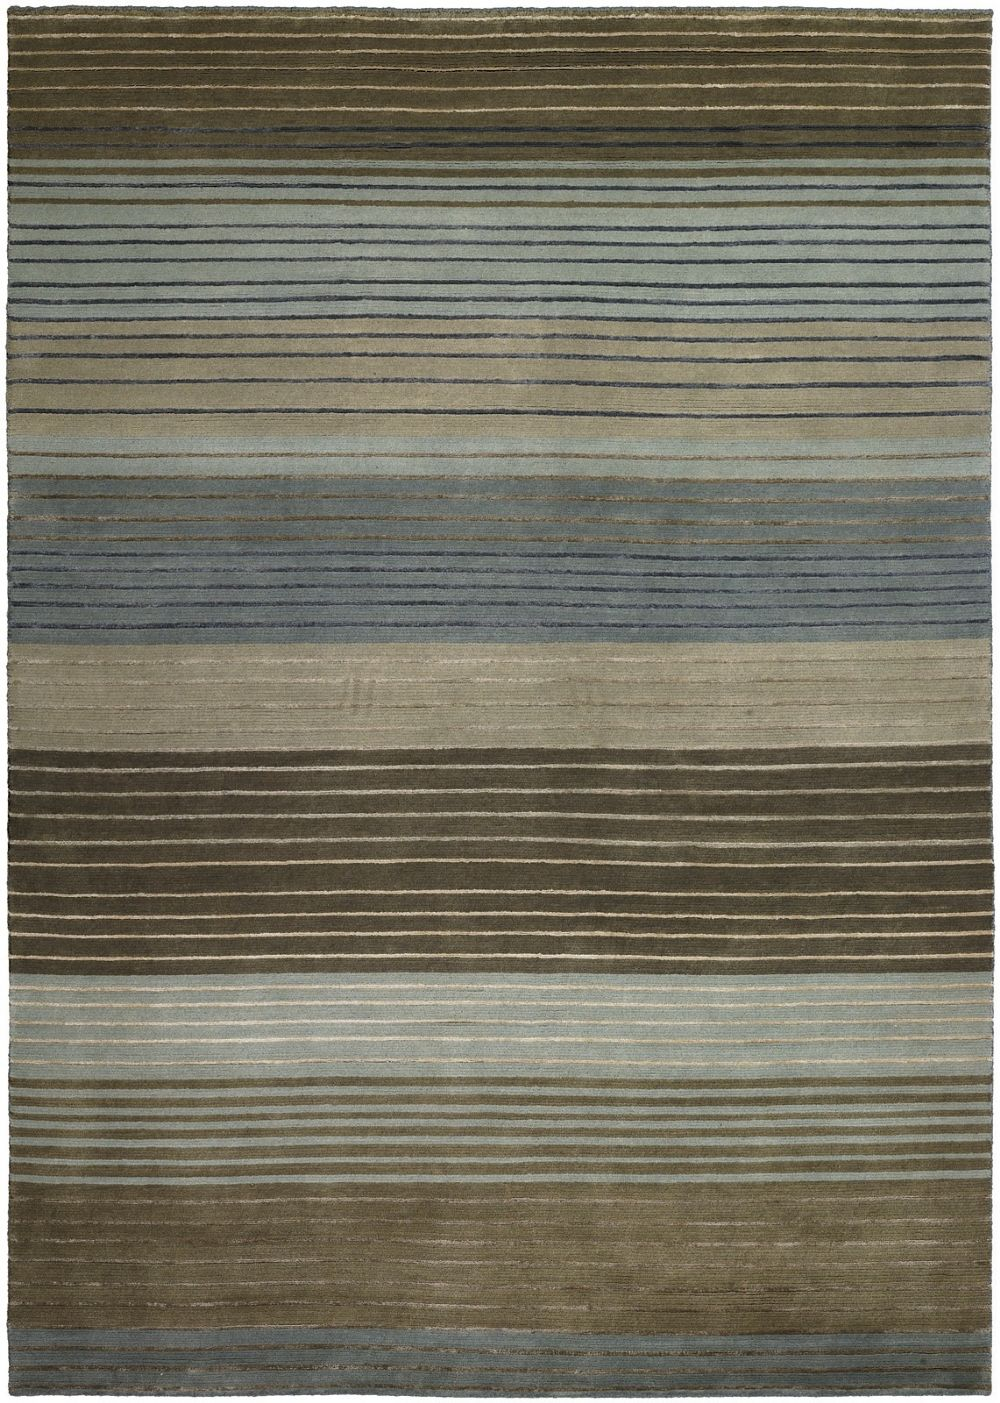 couristan pokhara solid/striped area rug collection